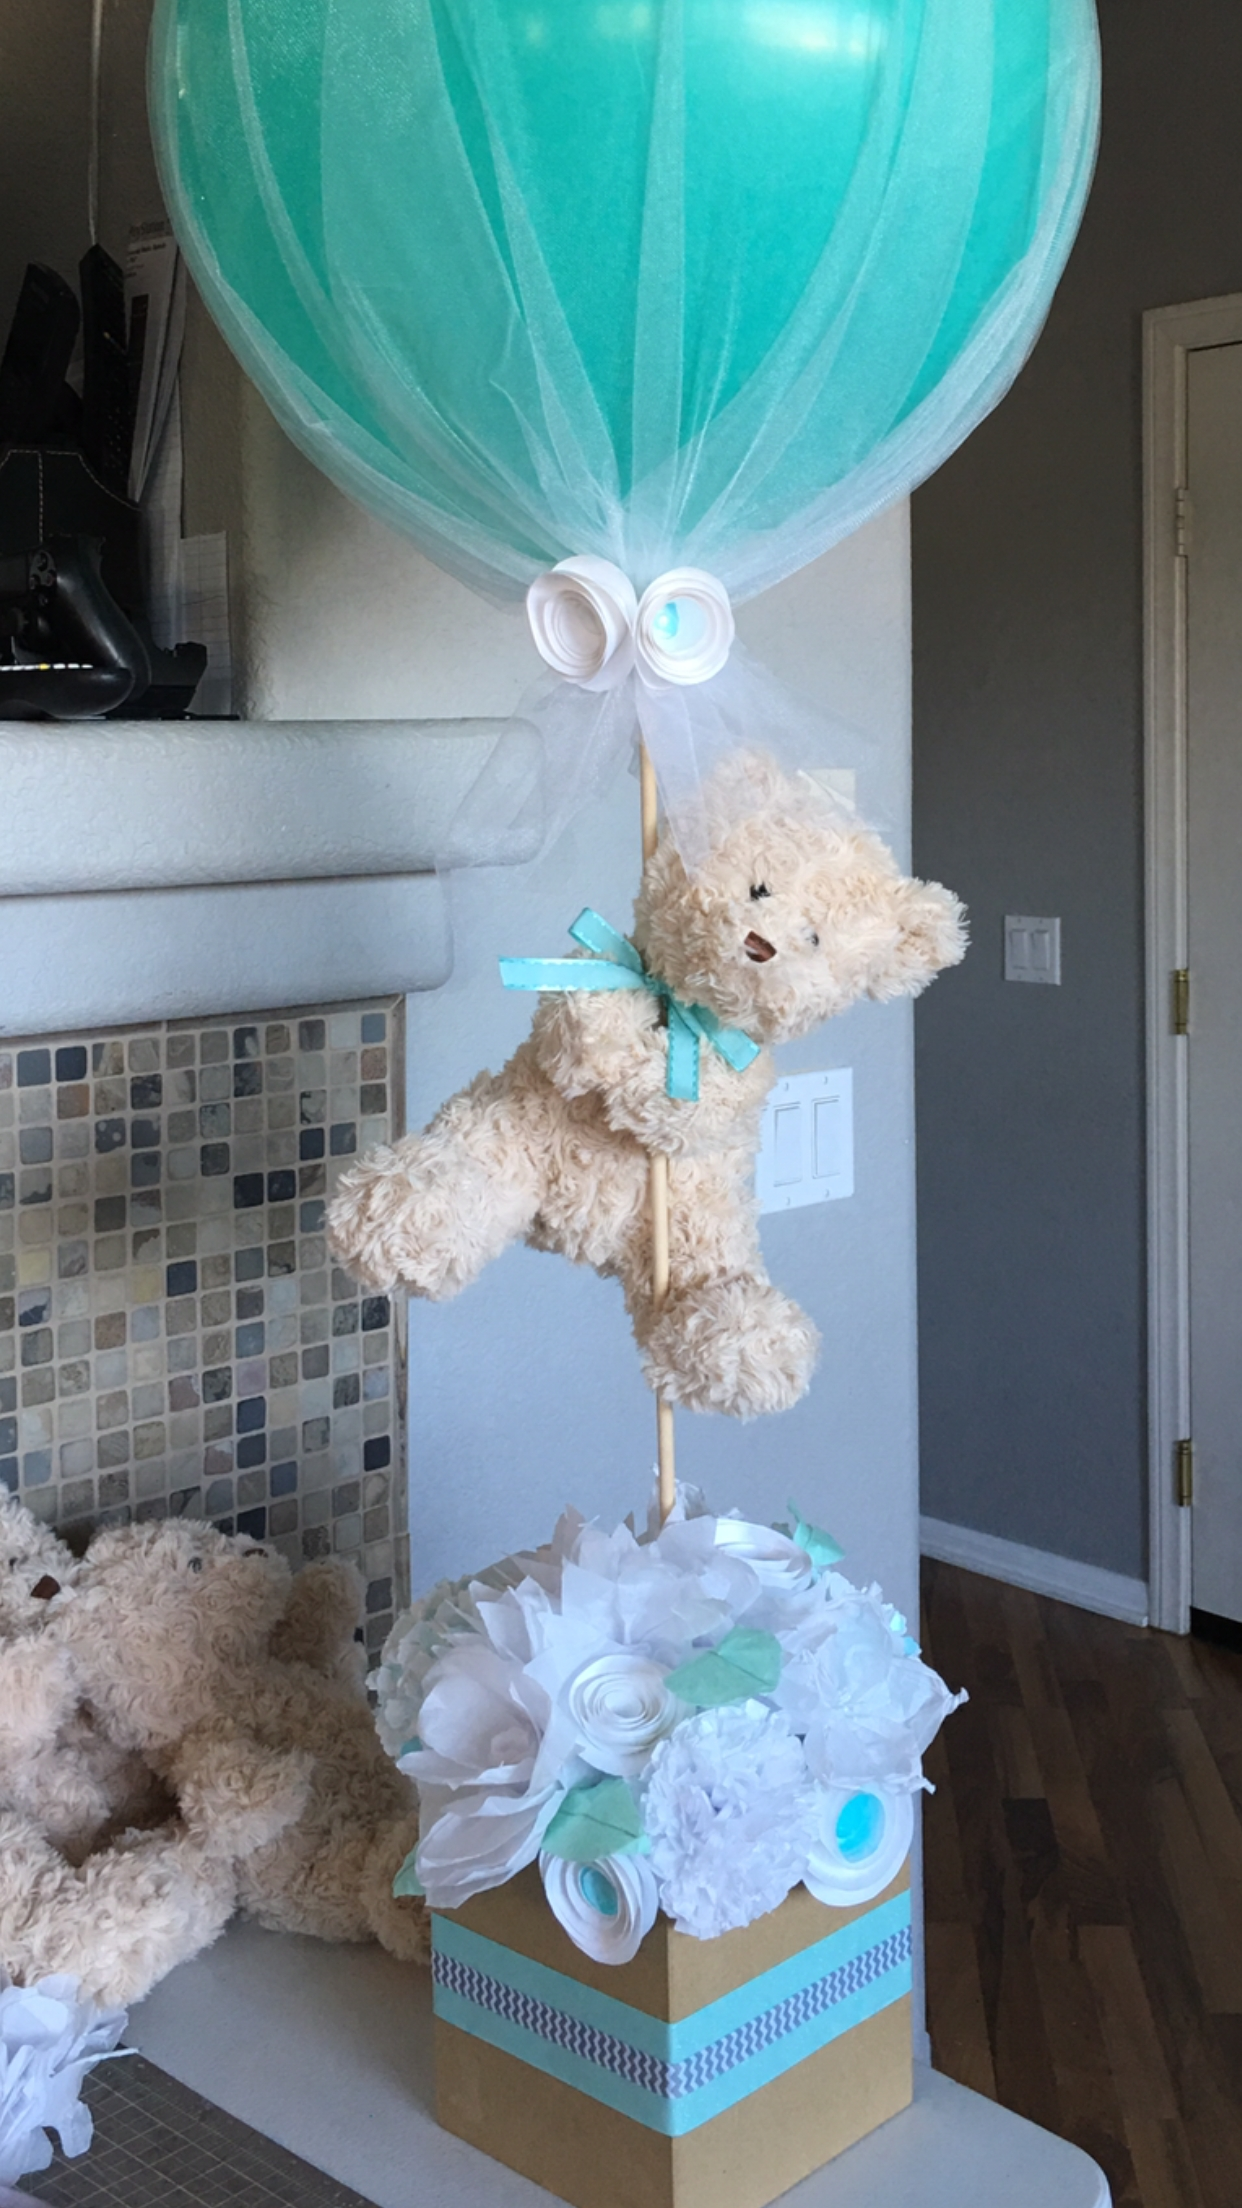 10 Pretty Diy Baby Shower Centerpiece Ideas 10 gender reveal party food ideas for your family babies 2020